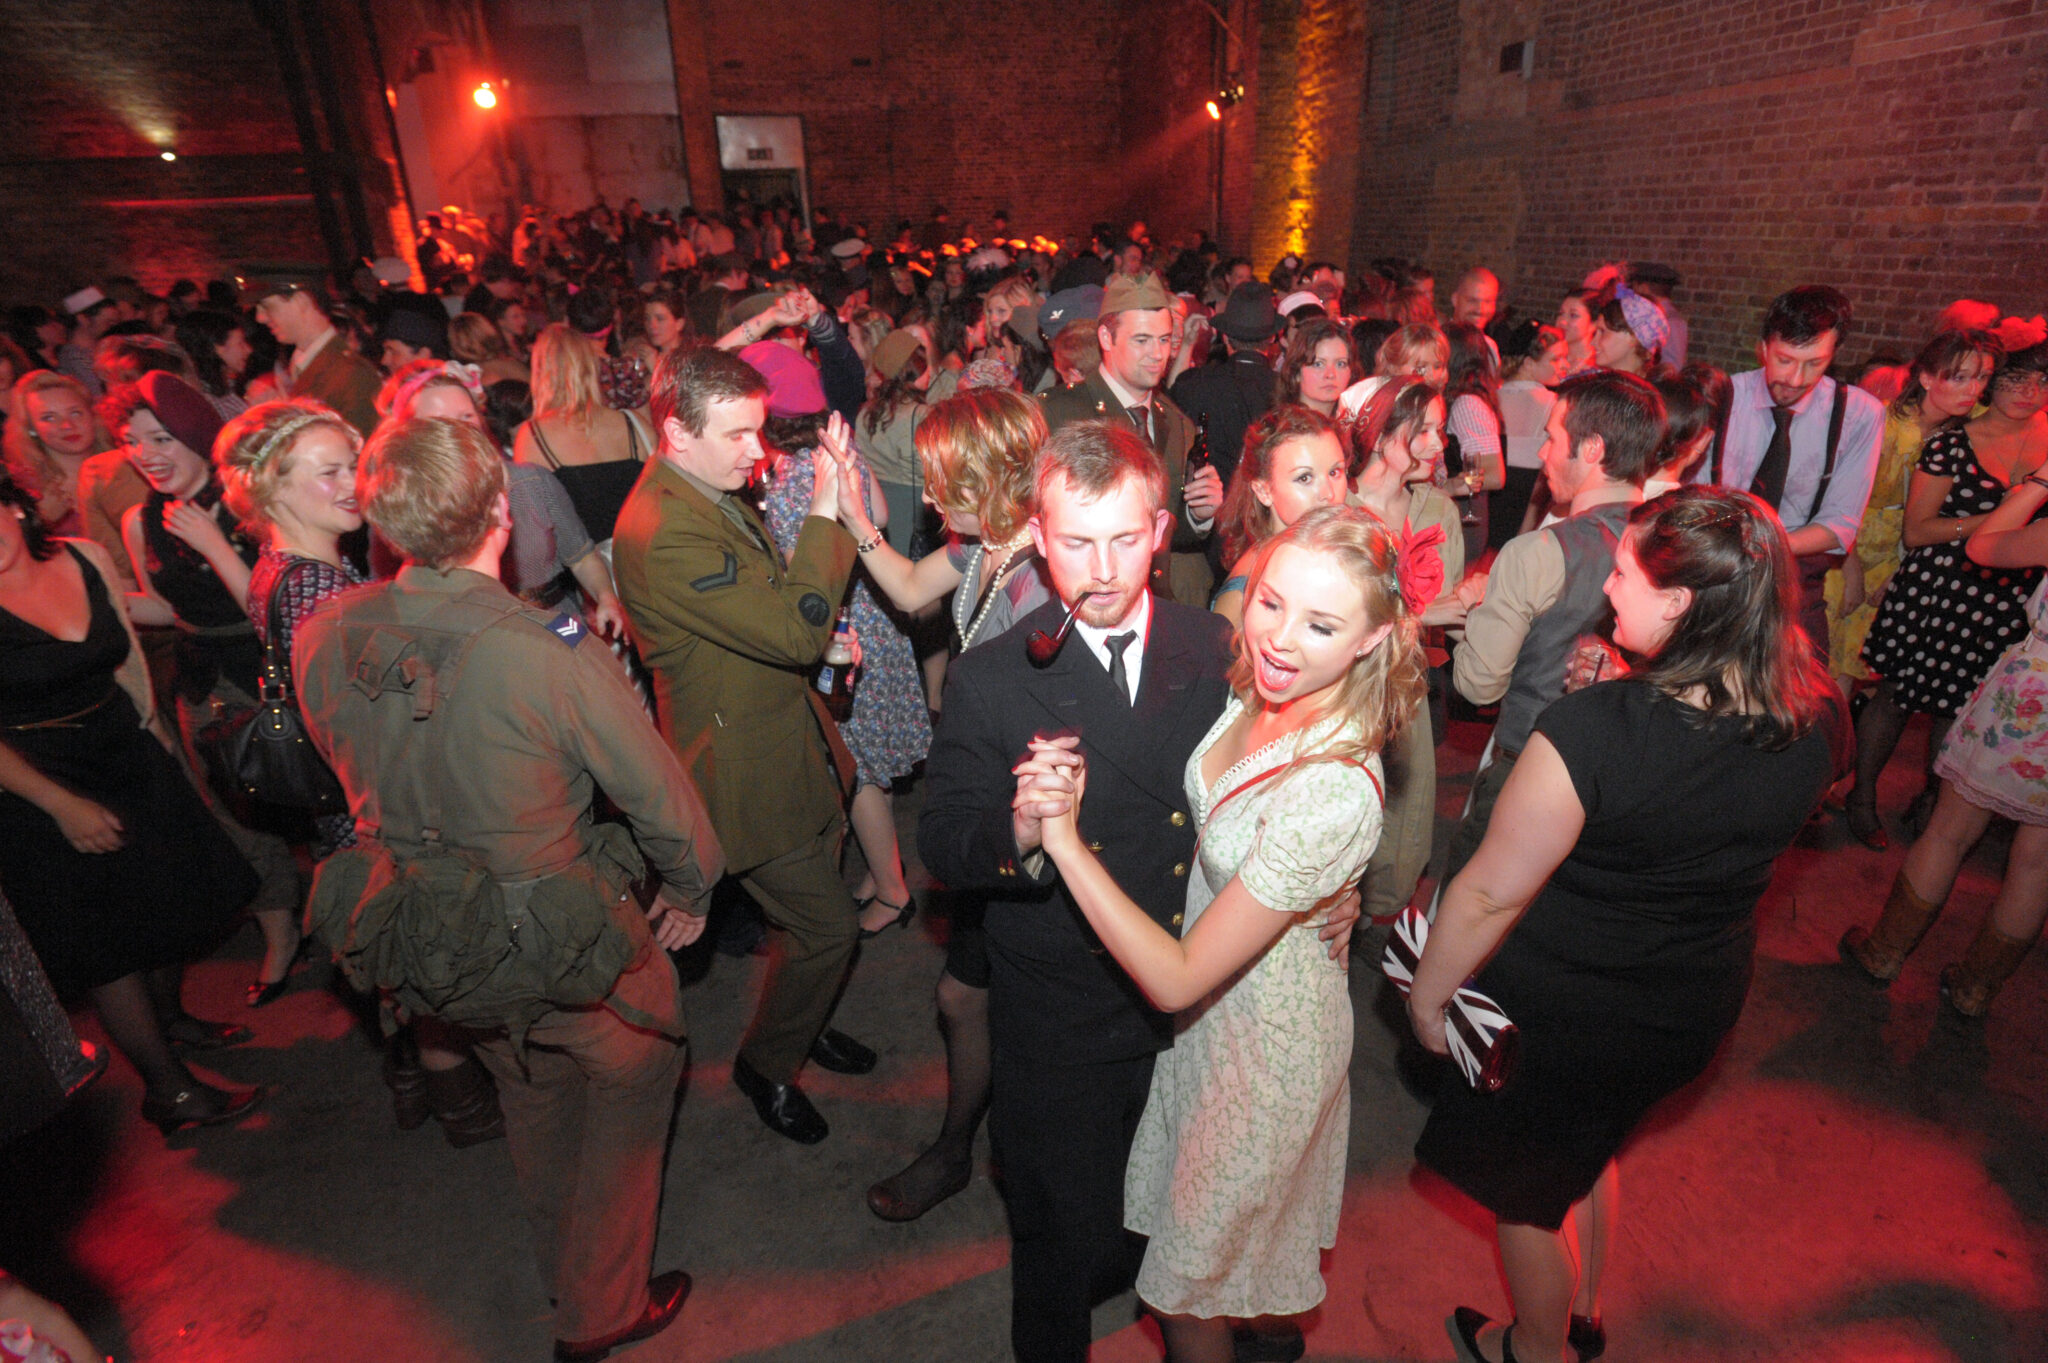 'Run For Shelter a night of Forties Fashion and Frolics On 65th Anniversary of D-Day' Coinciding with the 65th anniversary of D-Day, 6th June Blitz Party event under the railway arches in Shoreditch, [54 Holywell Lane , Ec2 ] remembering and honouring BritainÕs finest with 1940s music and dancing. Ê The Blitz Party gives party goers the opportunity to step back in time at our 1940s East End air raid shelter, where drinks, dancing and neighbourly spirit are the order of the evening. Ê Dress code: 1940's glam, home front utility clothing and allied uniform The venue transformed into a wartime East End air raid shelter; c/w : with sand bags, searchlights, blackout curtains, oil lamps & ration books replace bar menus and scarce provisions line the walls. The perfect setting to enjoy 1940s entertainment, including the UKÕs finest swing bands, performers and DJs, drink tasty cocktails and dance the night away. Ê www.theblitzparty.com part of the Bourne & Hollingsworth Group pics and copyright Nick Cunard commission The London Lite Ê